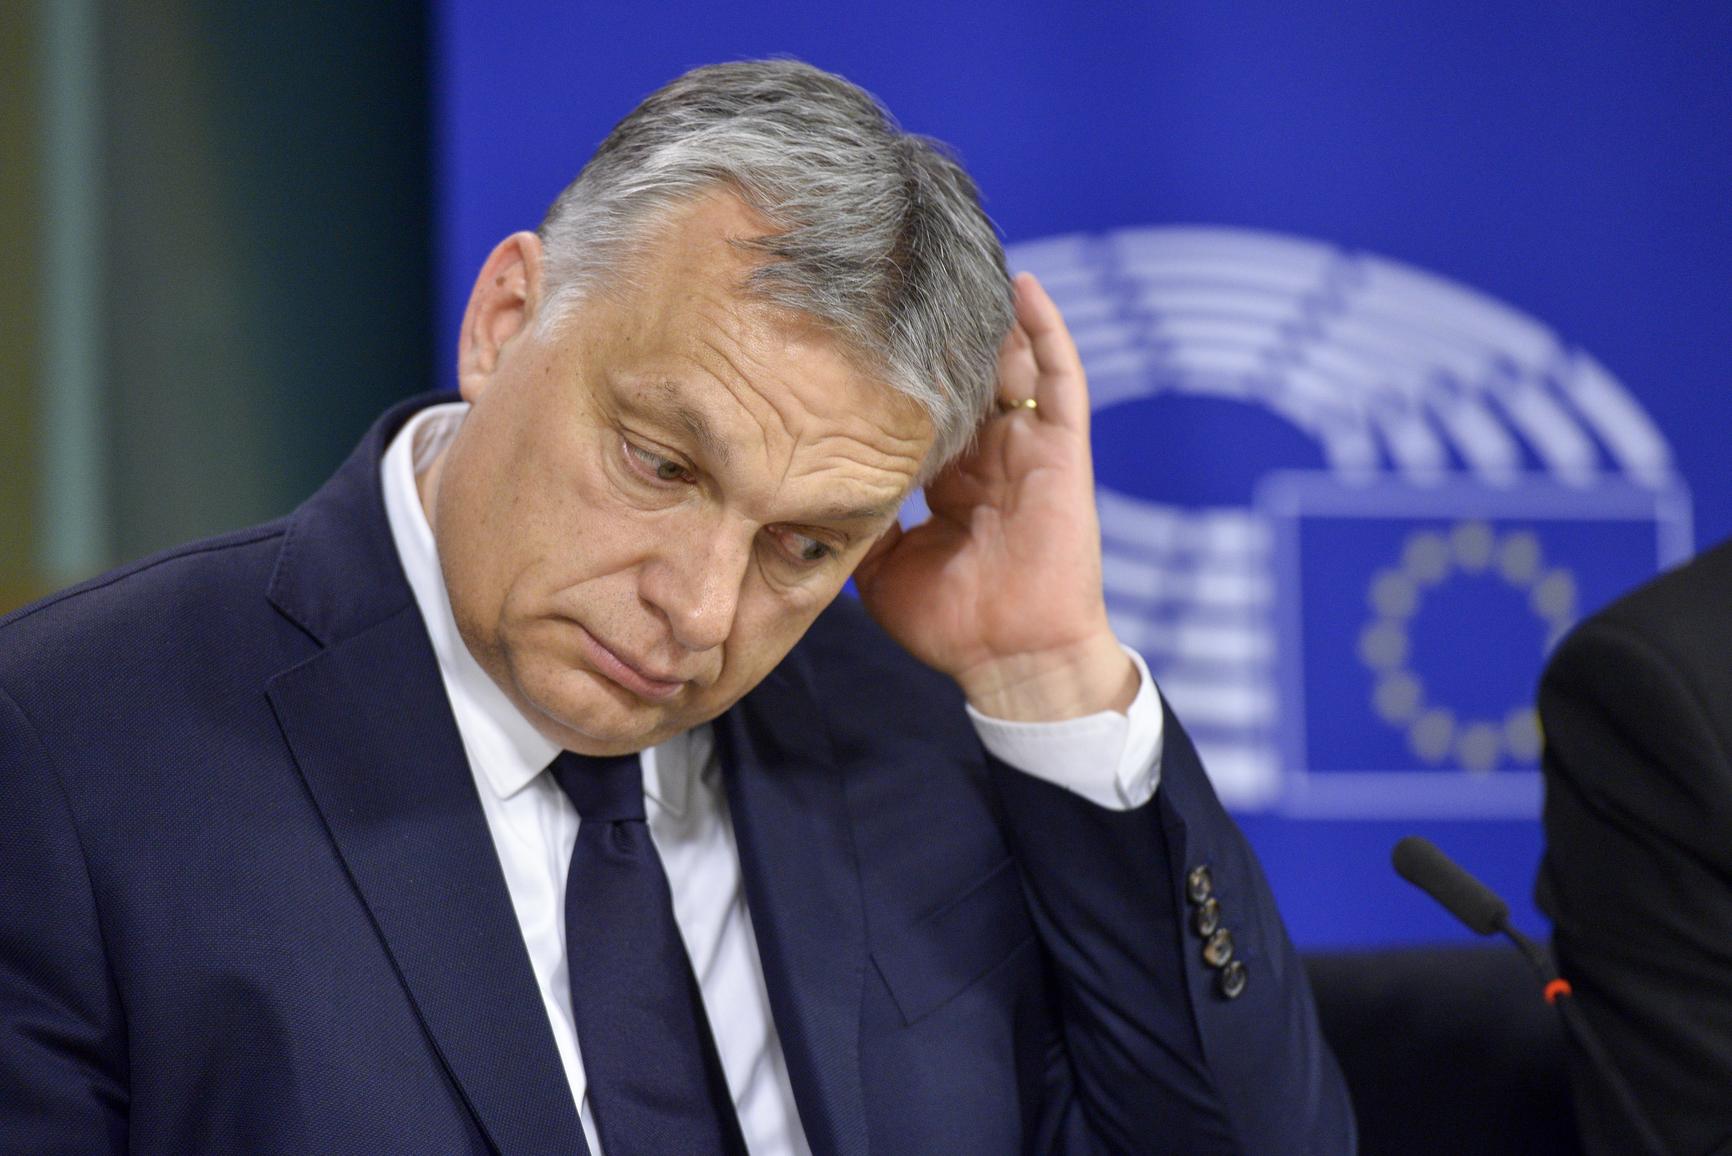 Hungary's Fidesz party suspended from European People's Party